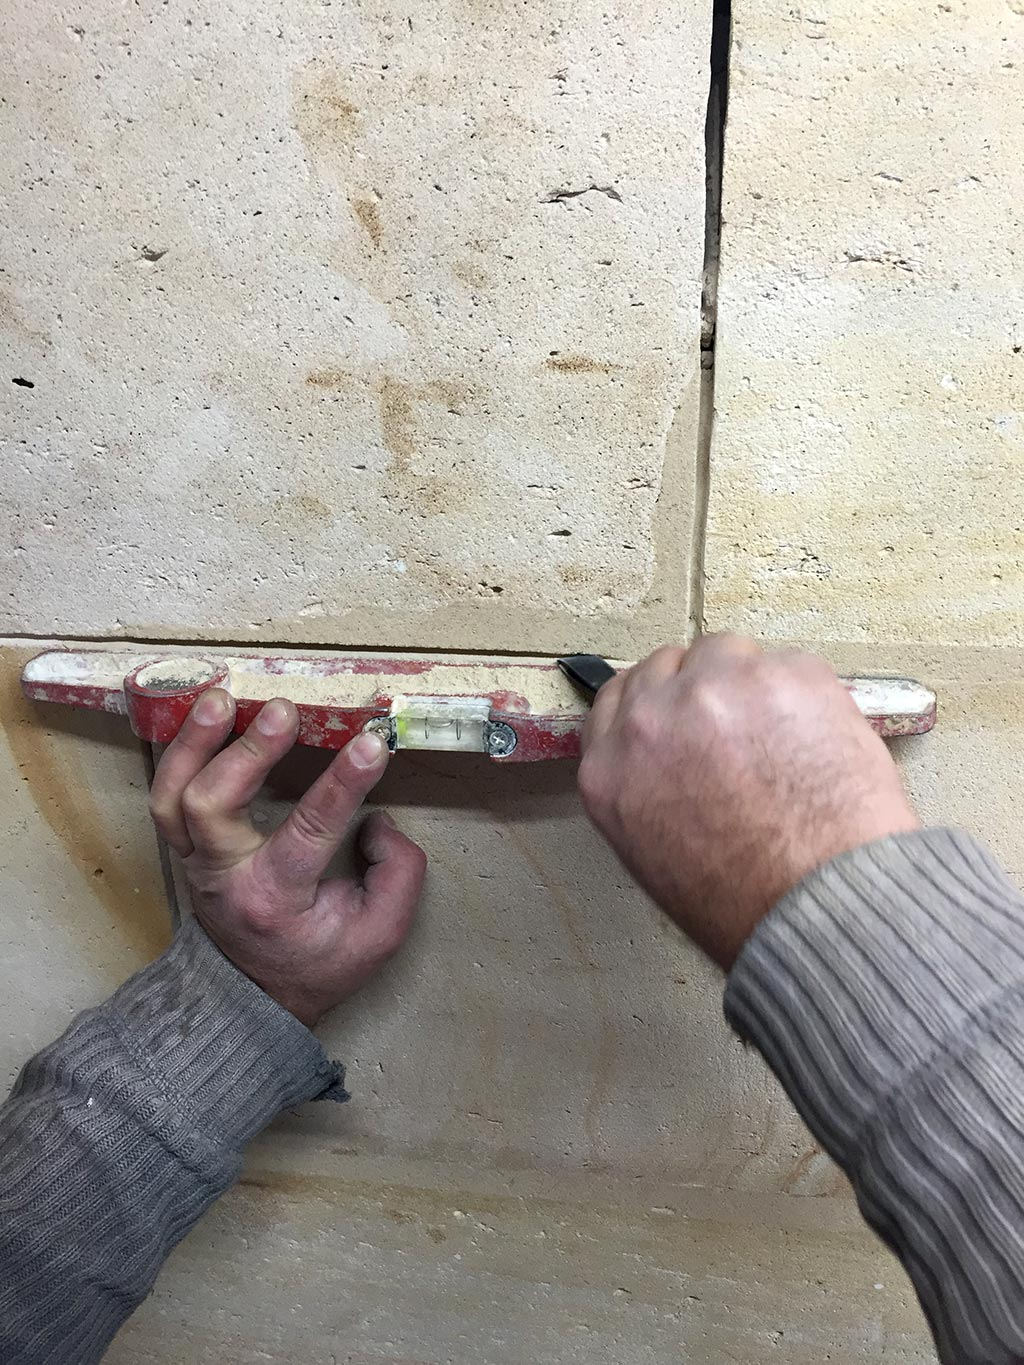 Réfection de joints sur un mur - MPR